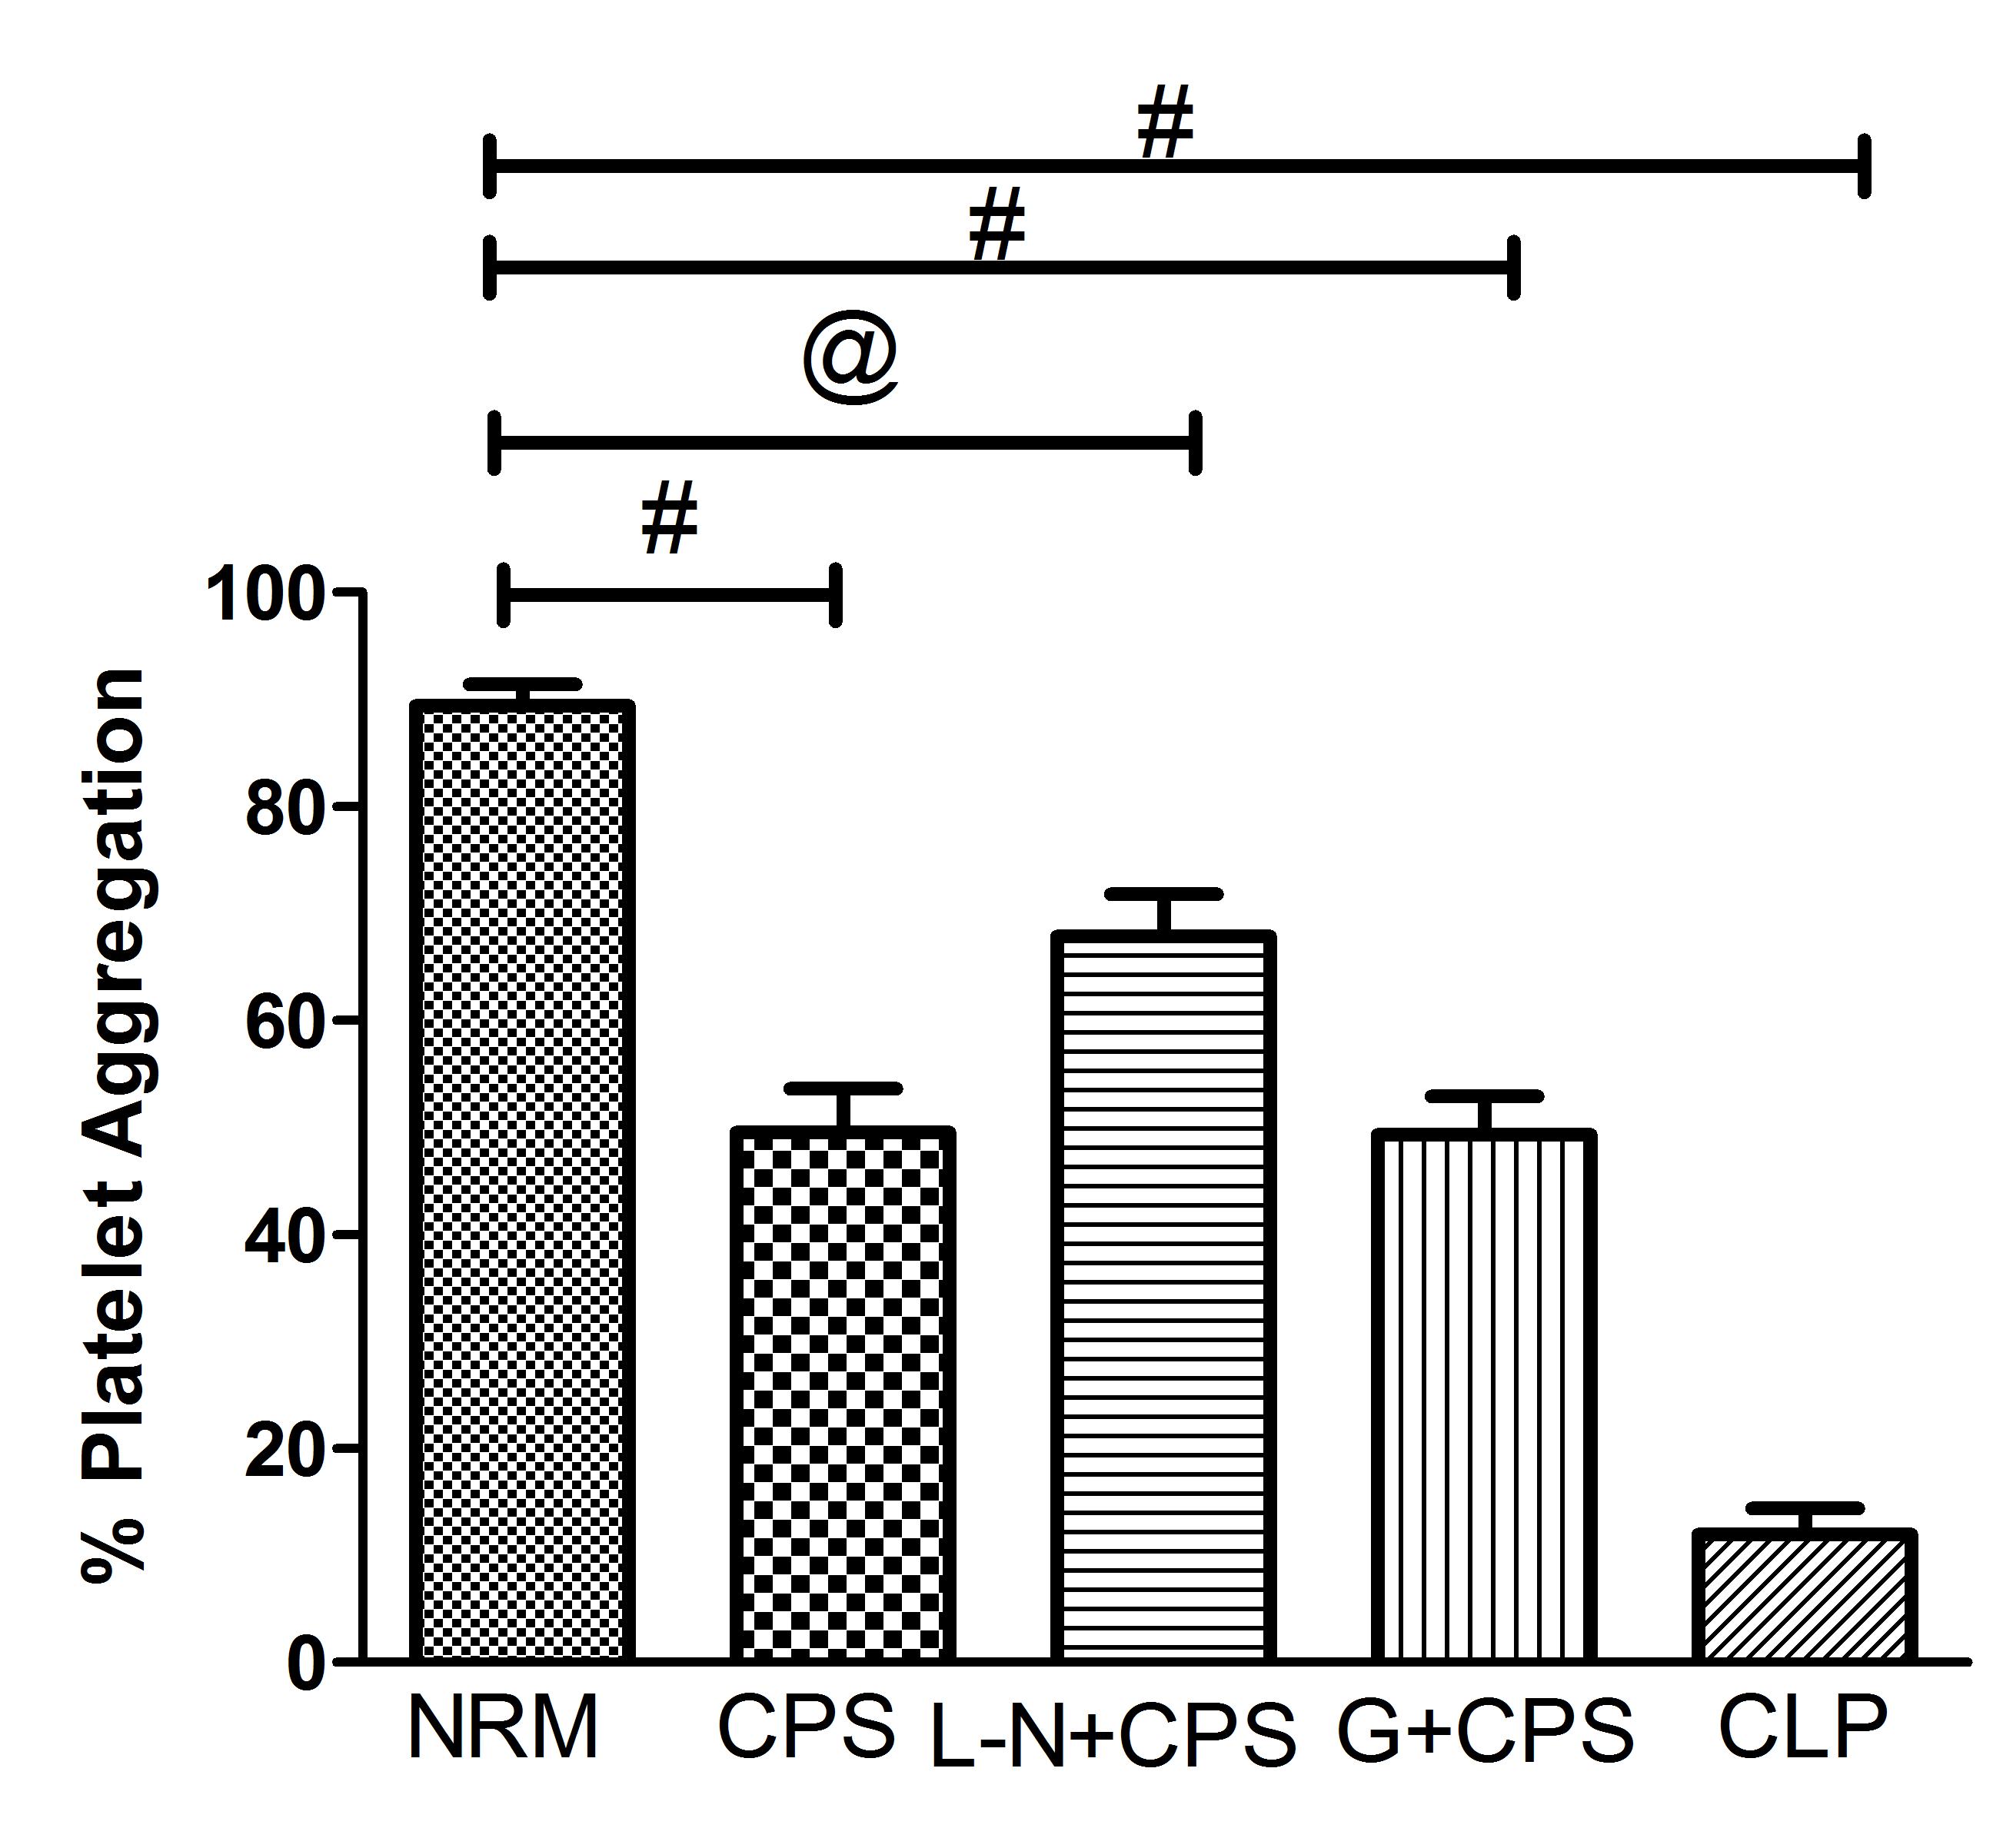 View of ROLE OF NITRIC OXIDE (NO) IN CAPSAICIN MEDIATED ANTI